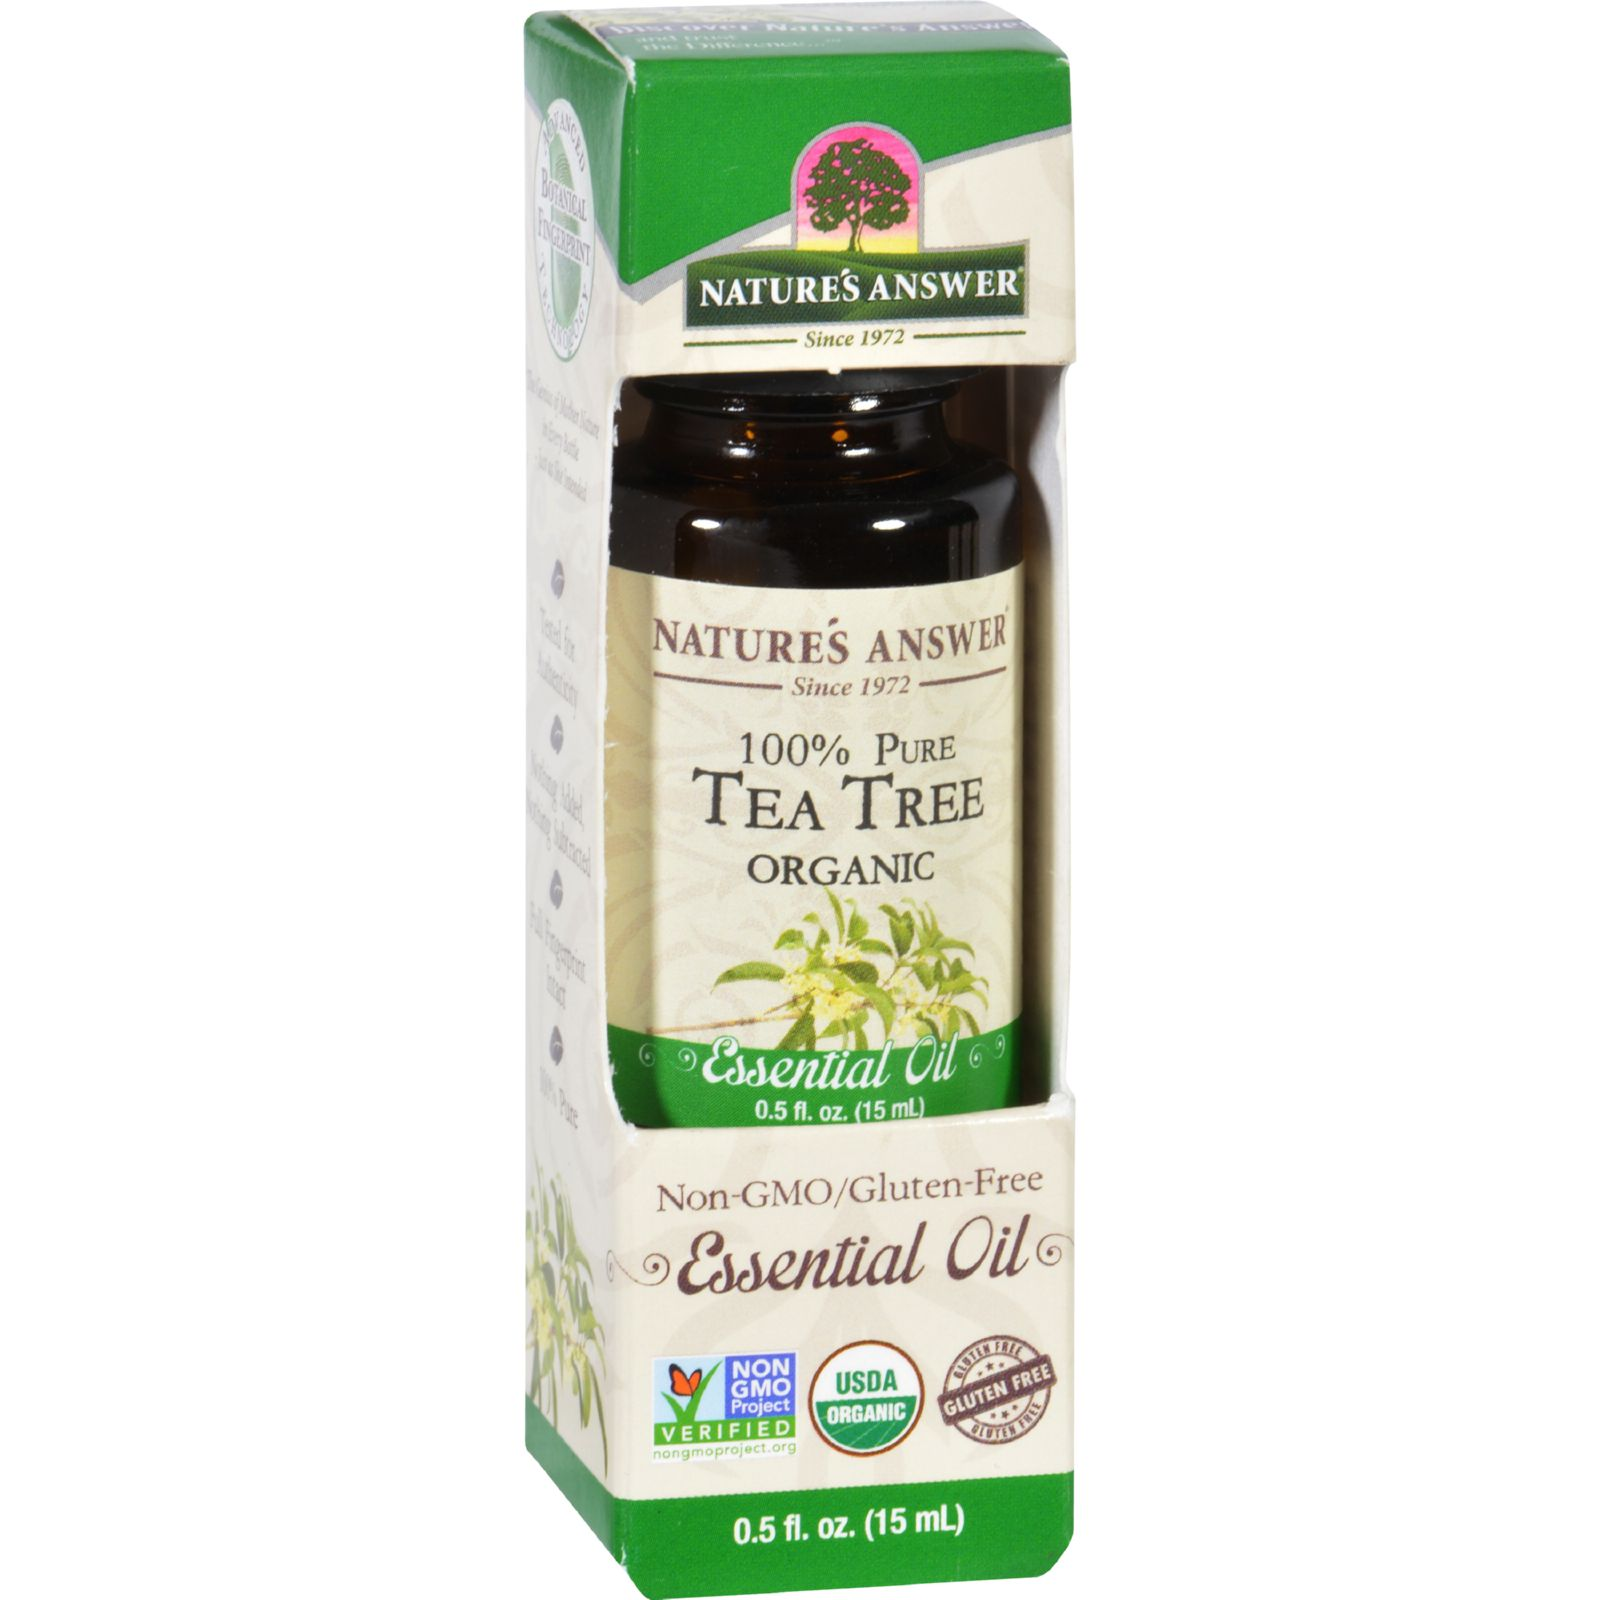 Natures Answer Essential Oil  Organic  Tea Tree  .5 oz